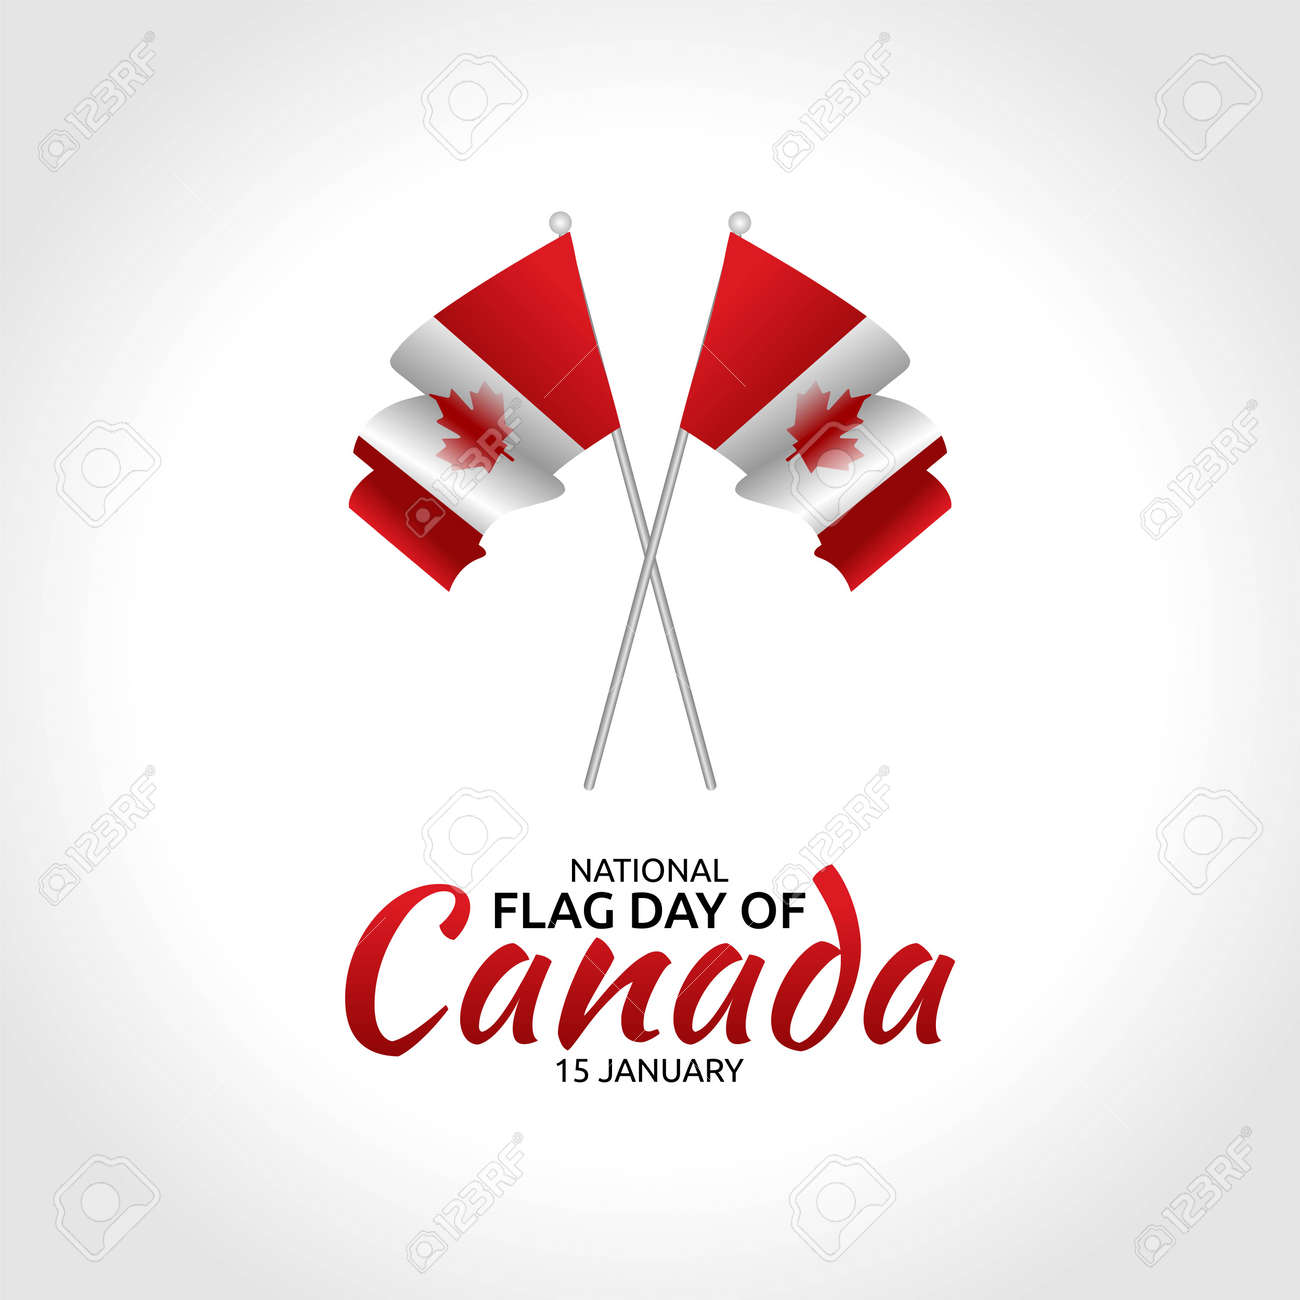 National Flag Day of Canada Vector Illustration. Suitable for greeting card poster and banner - 159771784